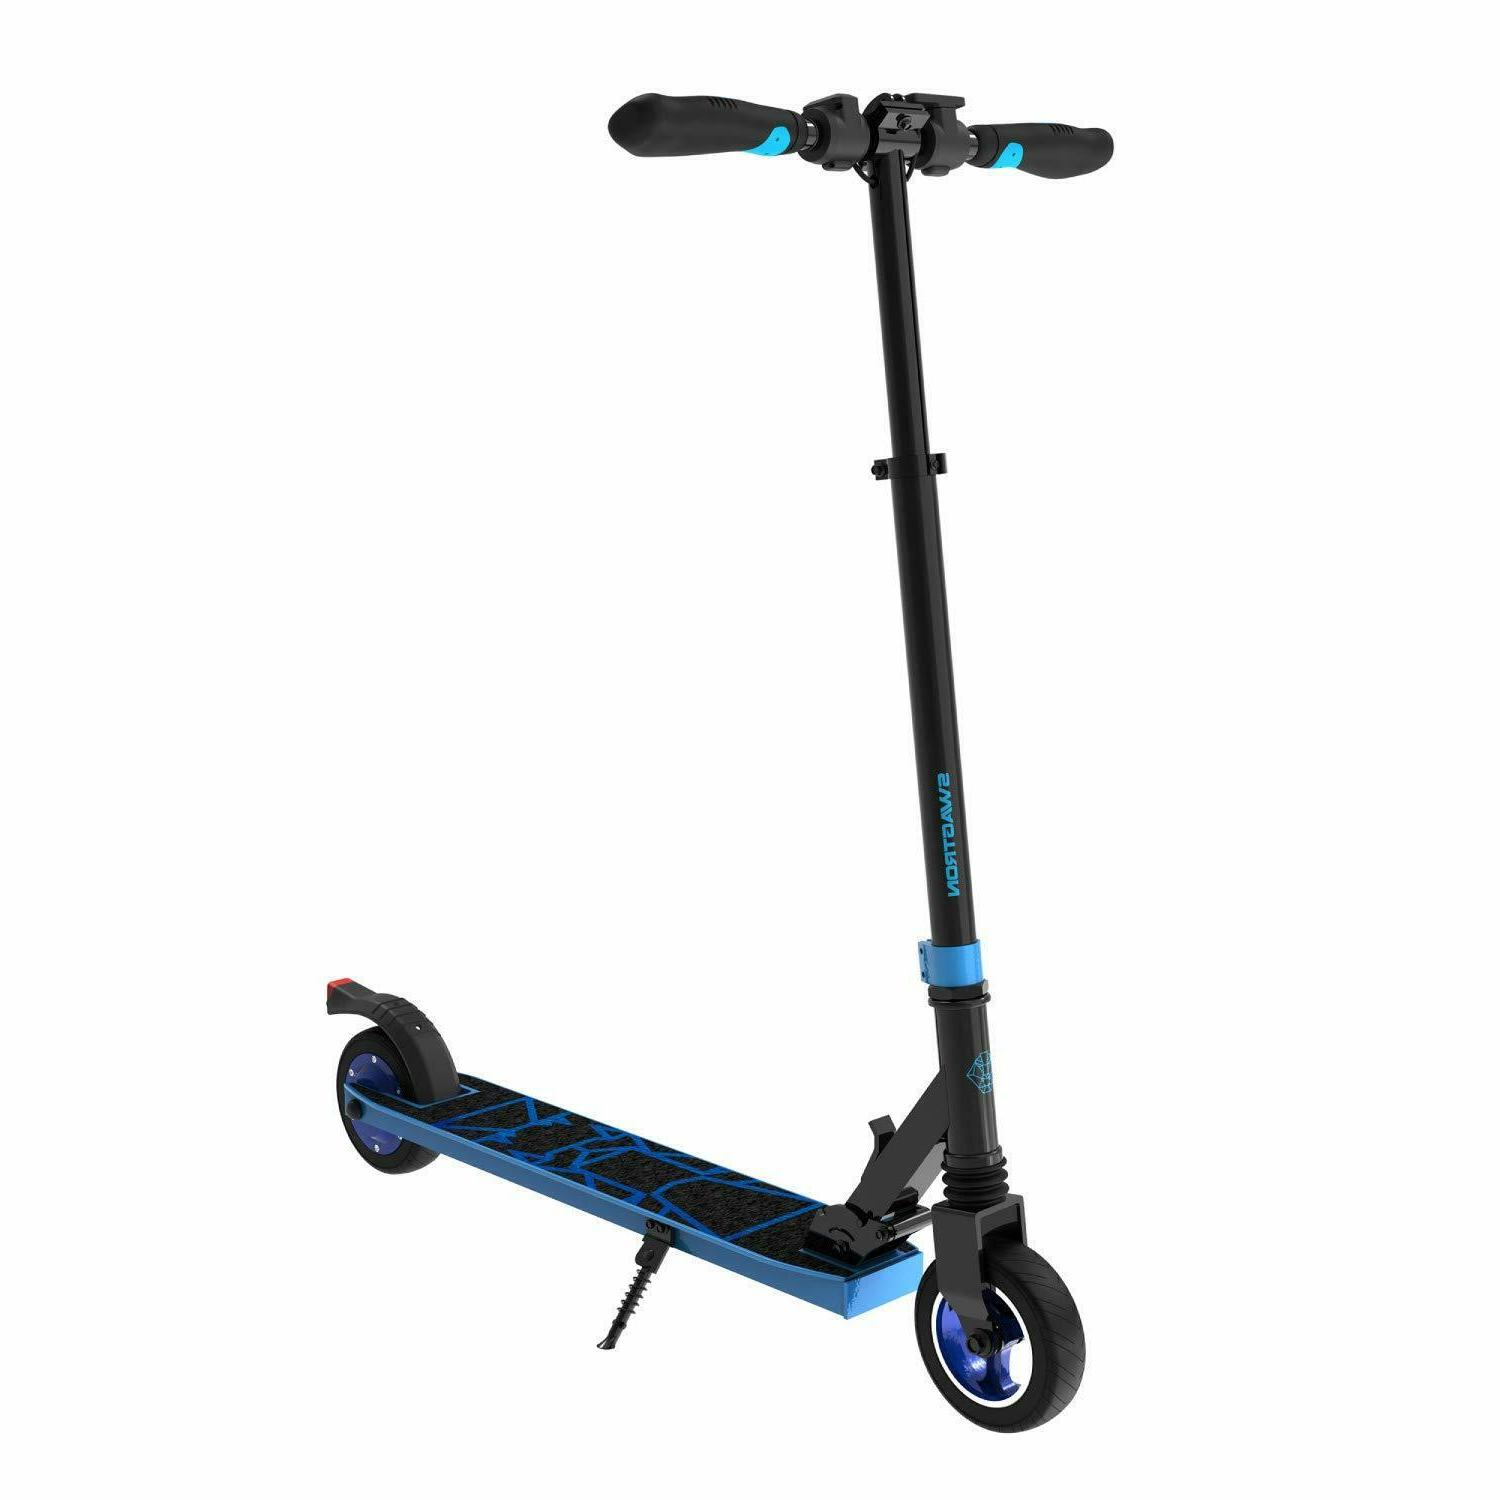 Swagtron Folding Electric Scooter for Teens Lightweight Crui